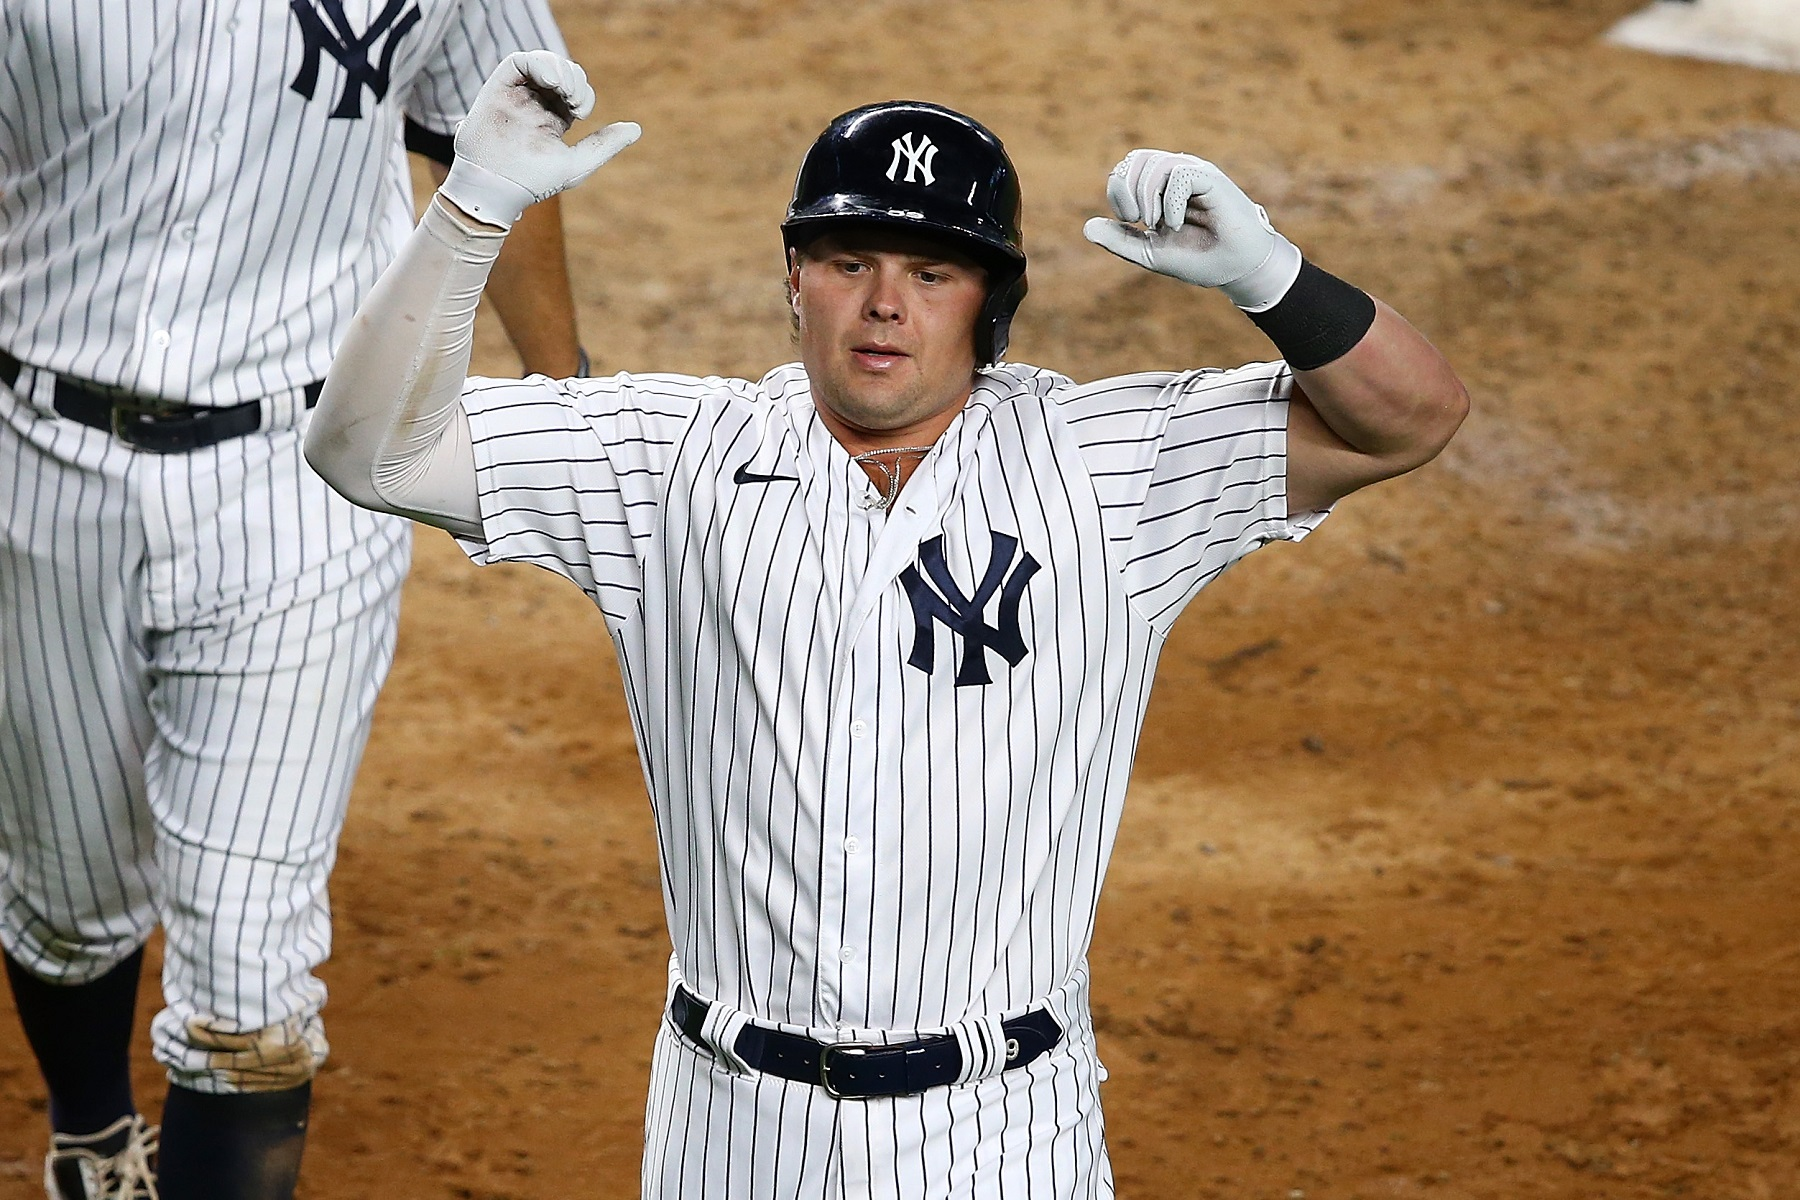 Luke Voit, New York Yankees